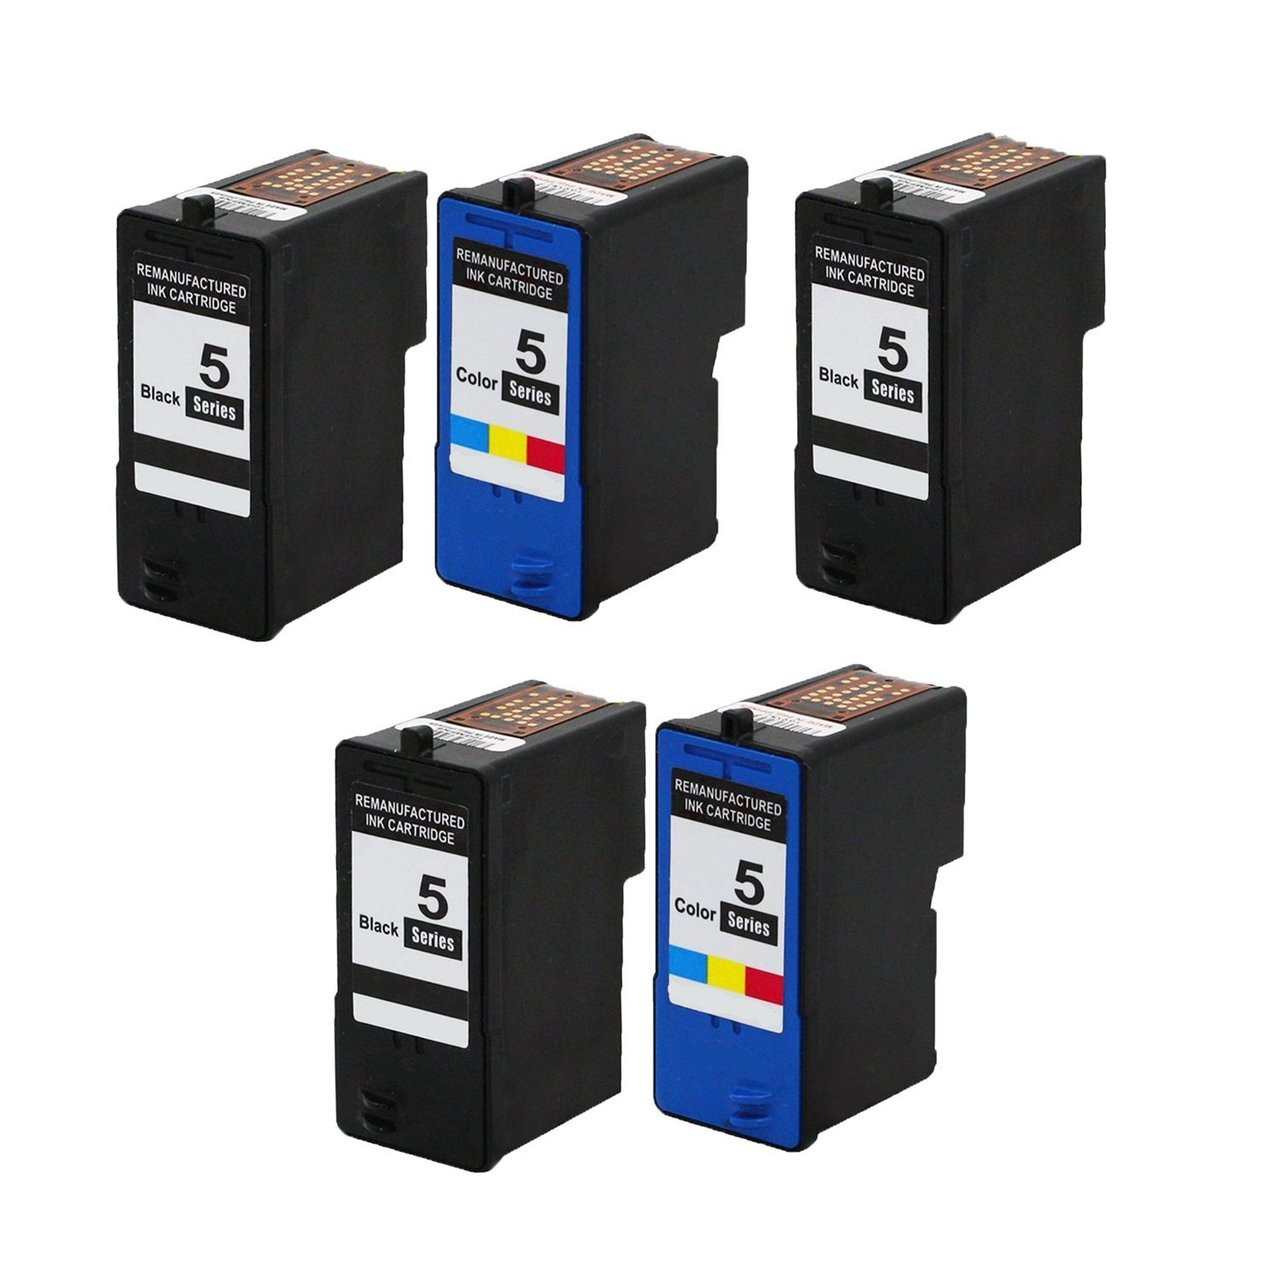 Dell 5 Pack 3 Black 2 Color Series 5 Hi Yield Remanufactured Ink